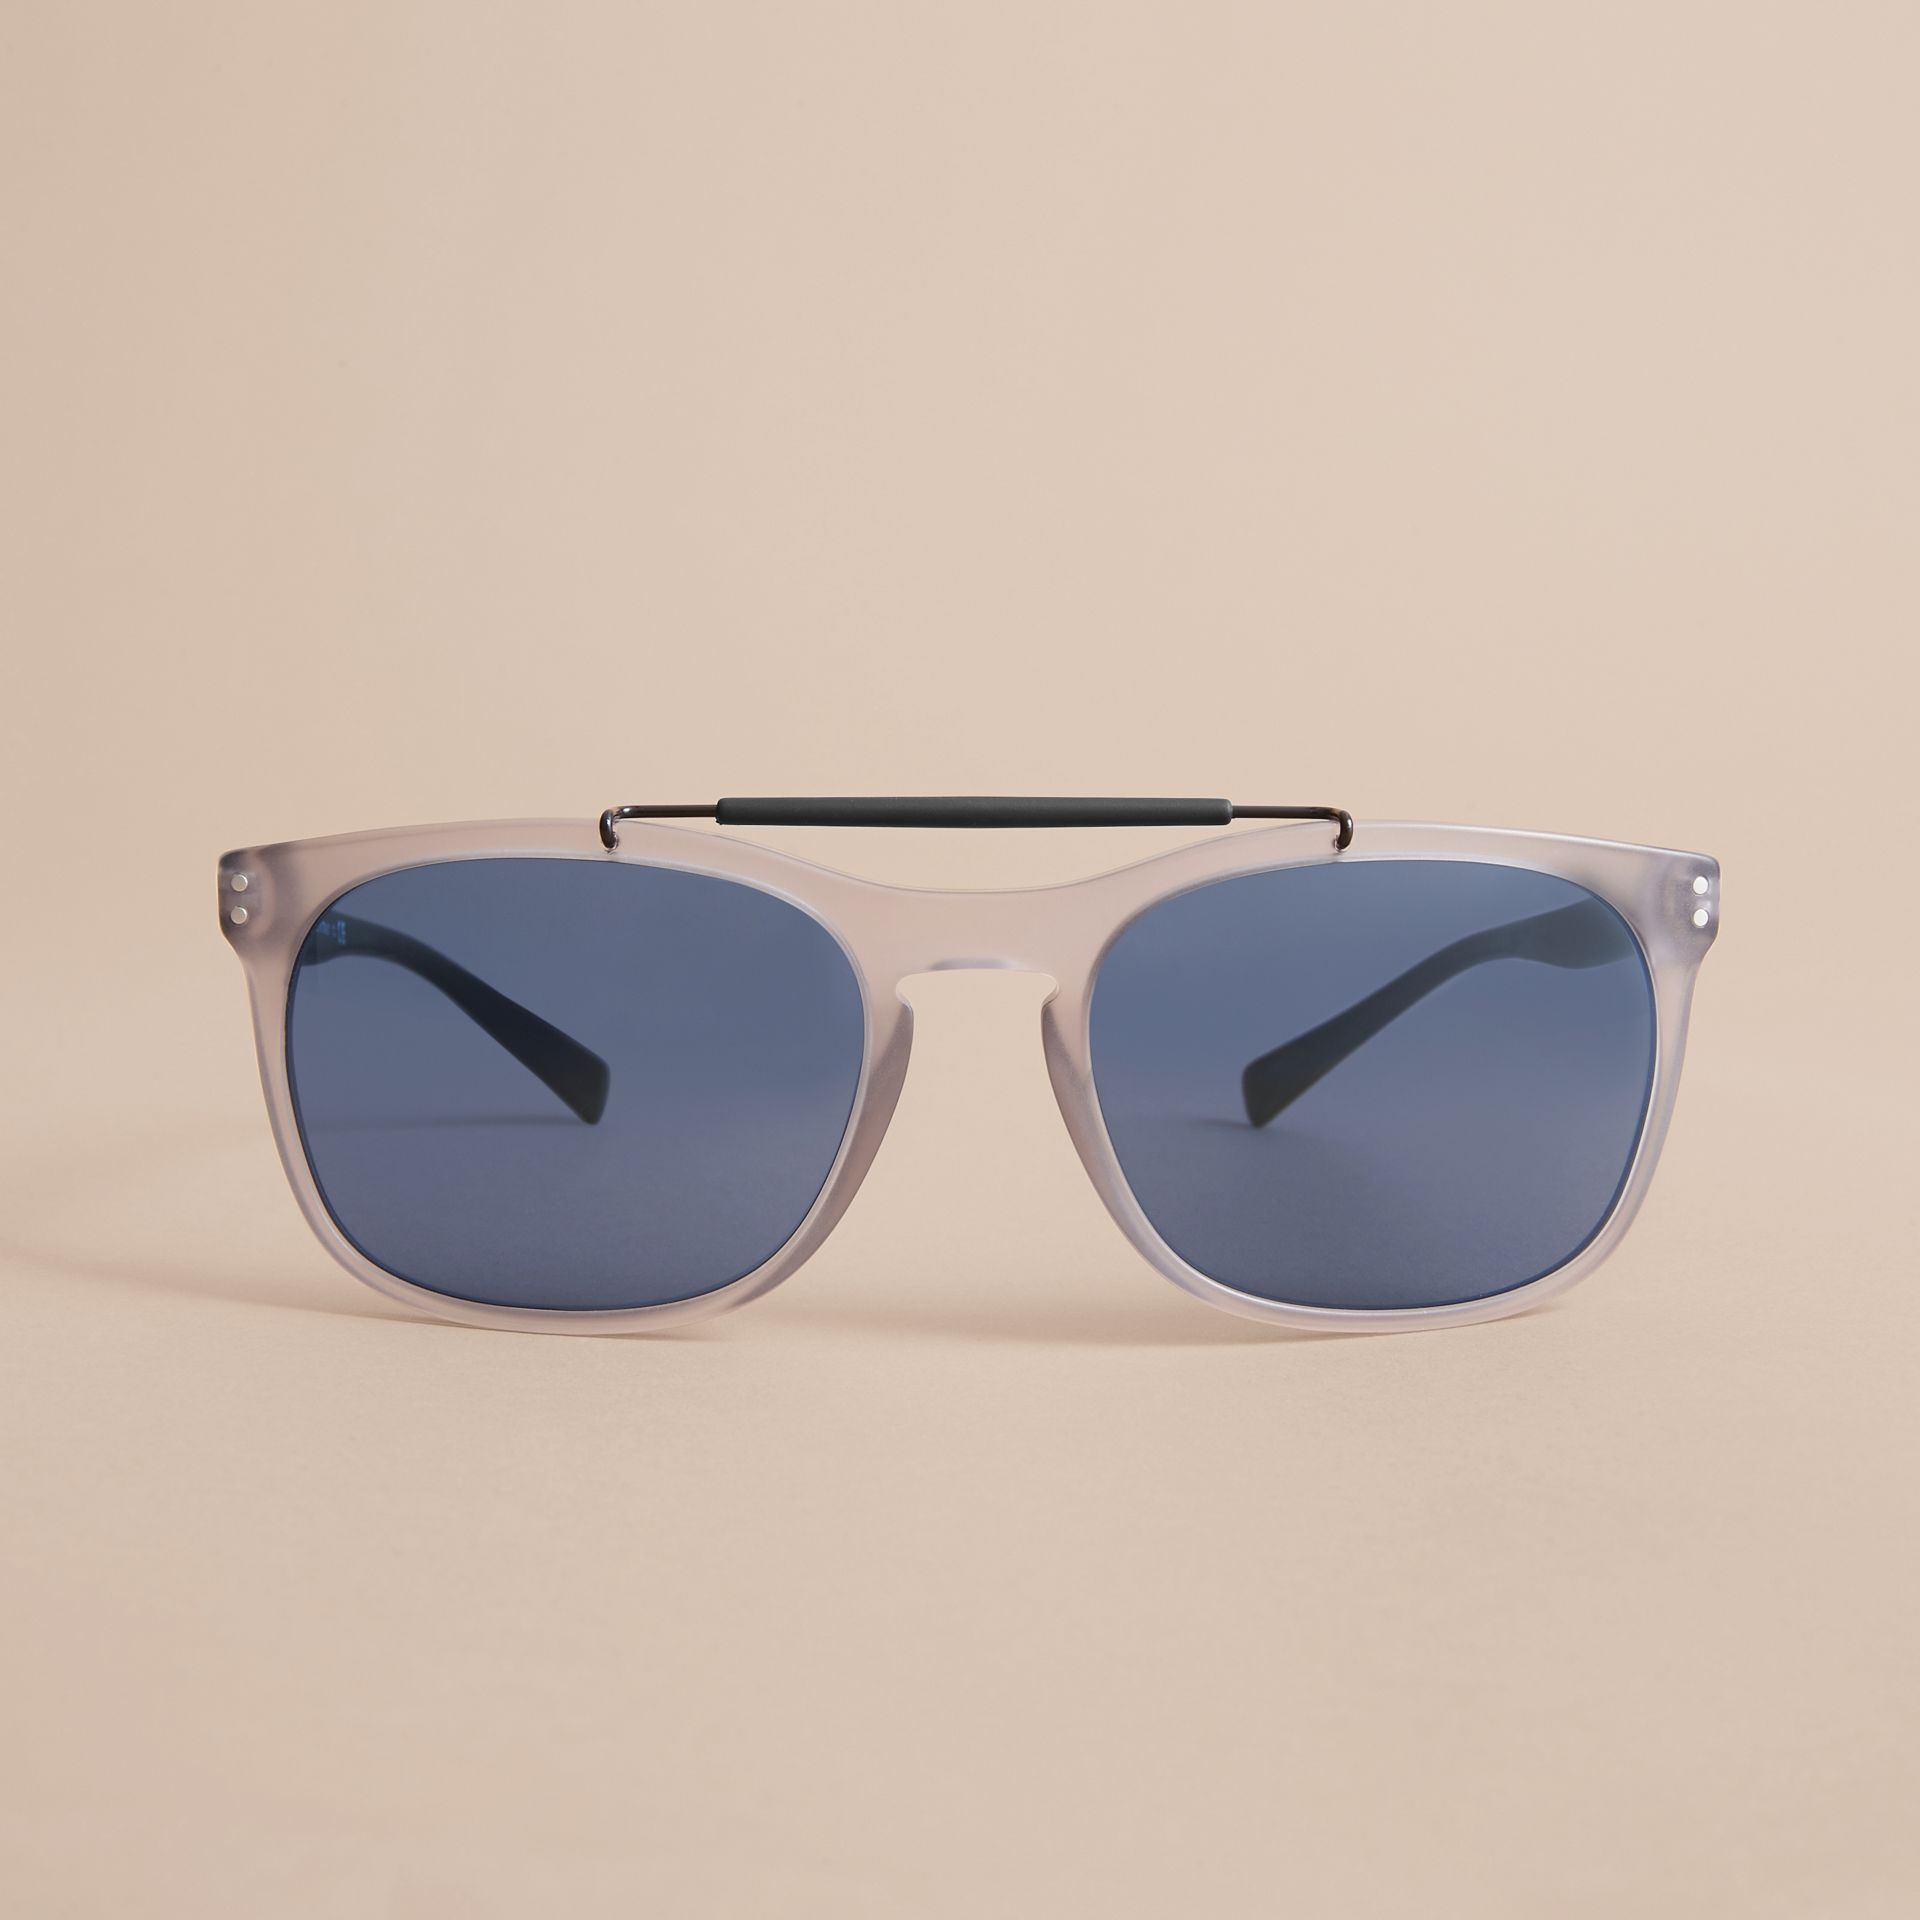 Top Bar Square Frame Sunglasses in Mineral Grey - Men | Burberry Australia - gallery image 3